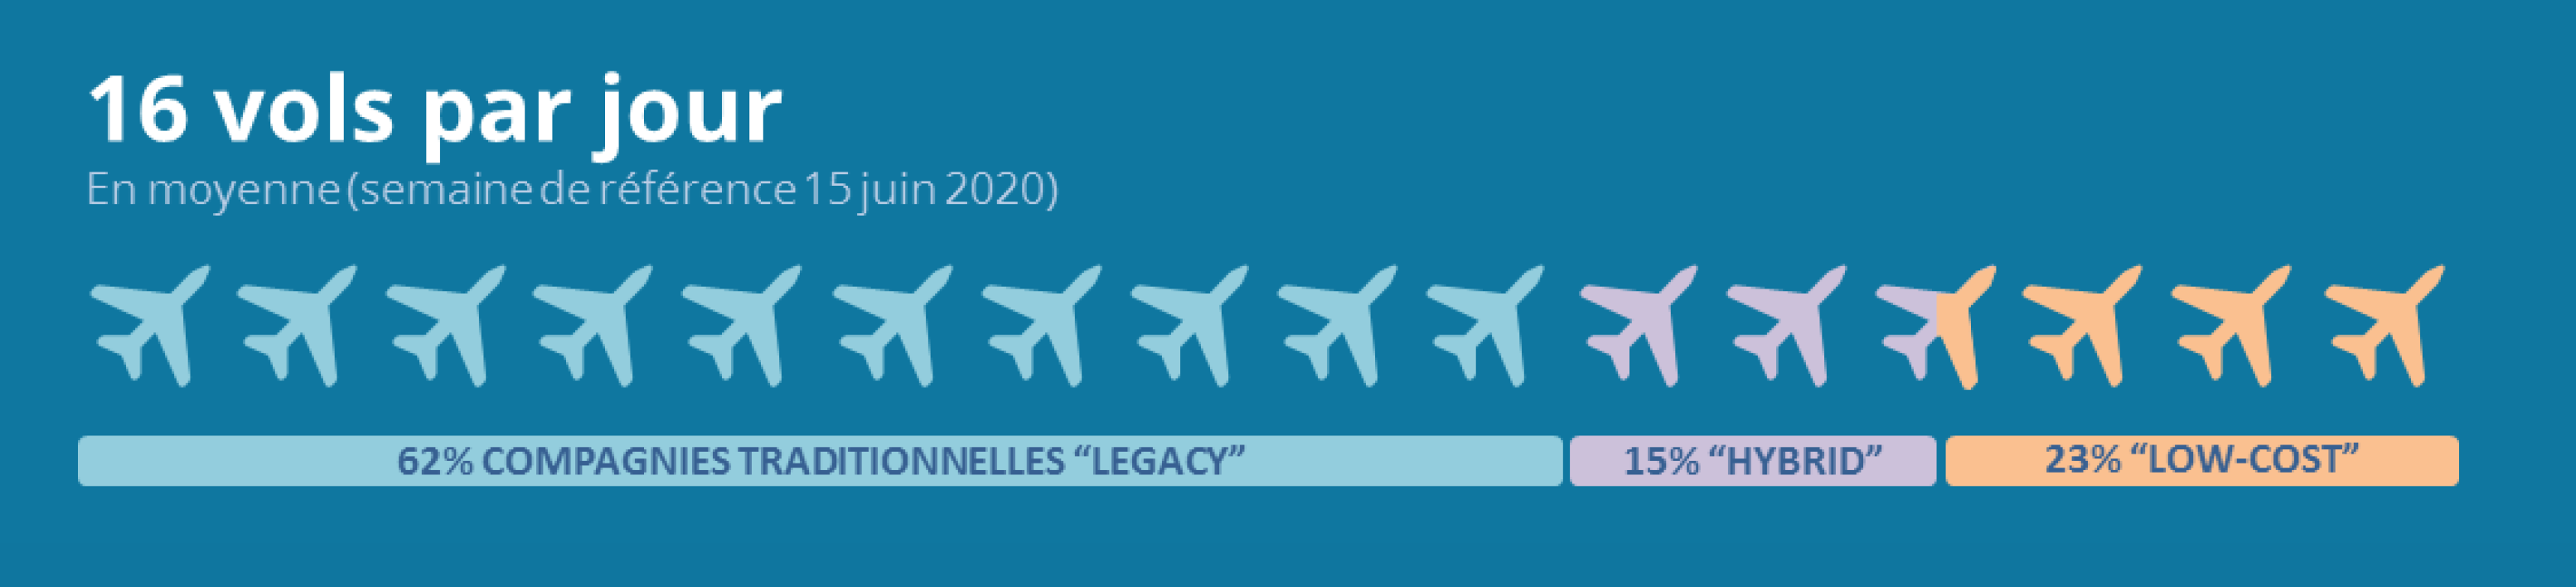 Infographie Flight-Report